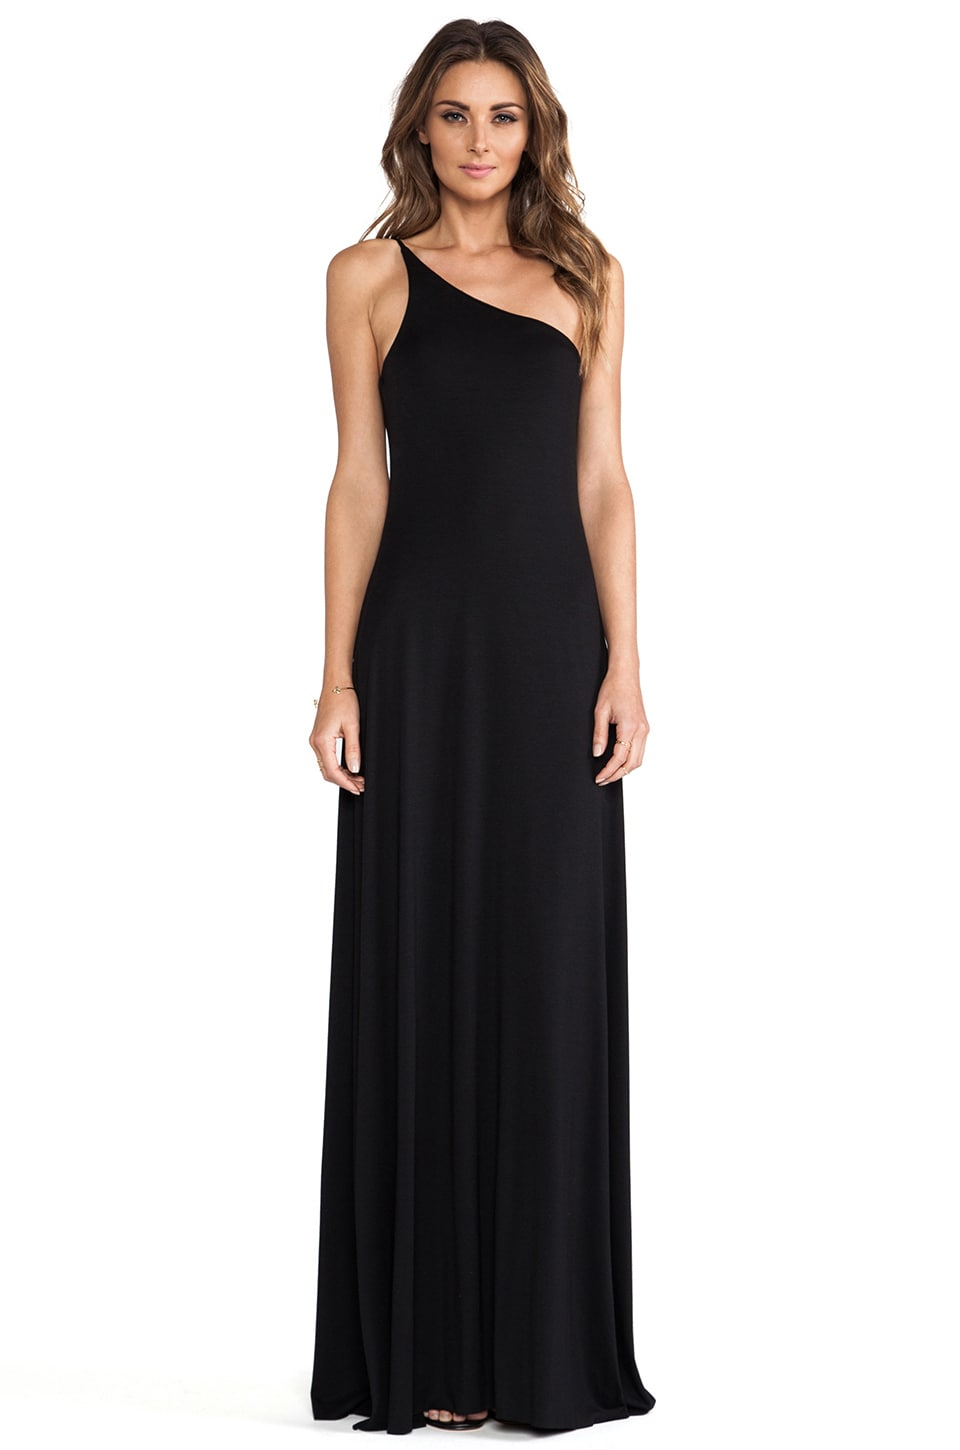 Rachel Pally Conrad One Shoulder Dress in Black